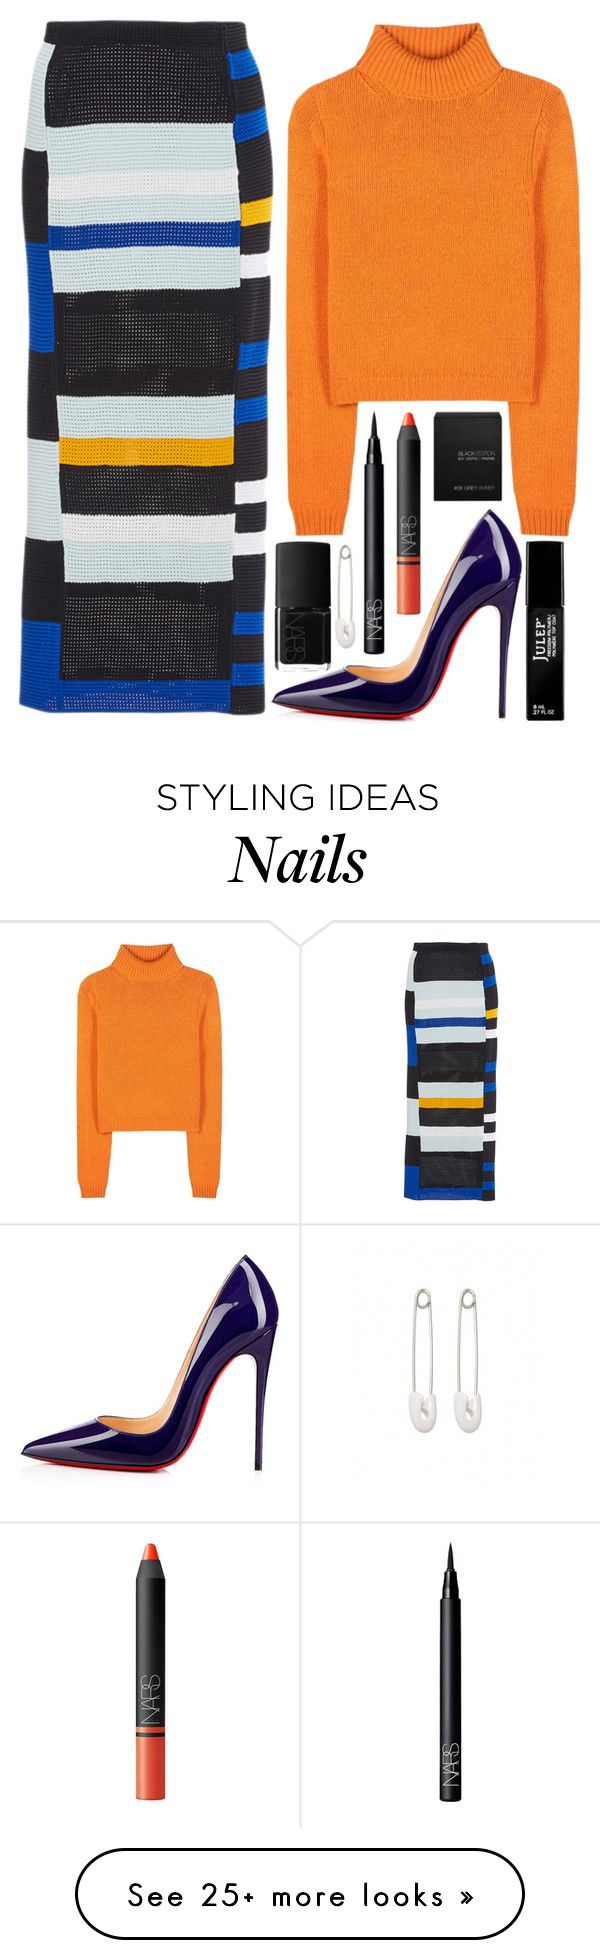 """""""pumpkin spice sweaters"""" by steenybeany on Polyvore featuring Proenza Schouler, Acne Studios, Christian Louboutin, Julep, NARS Cosmetics, Ex Voto Paris and Kristin Cavallari"""